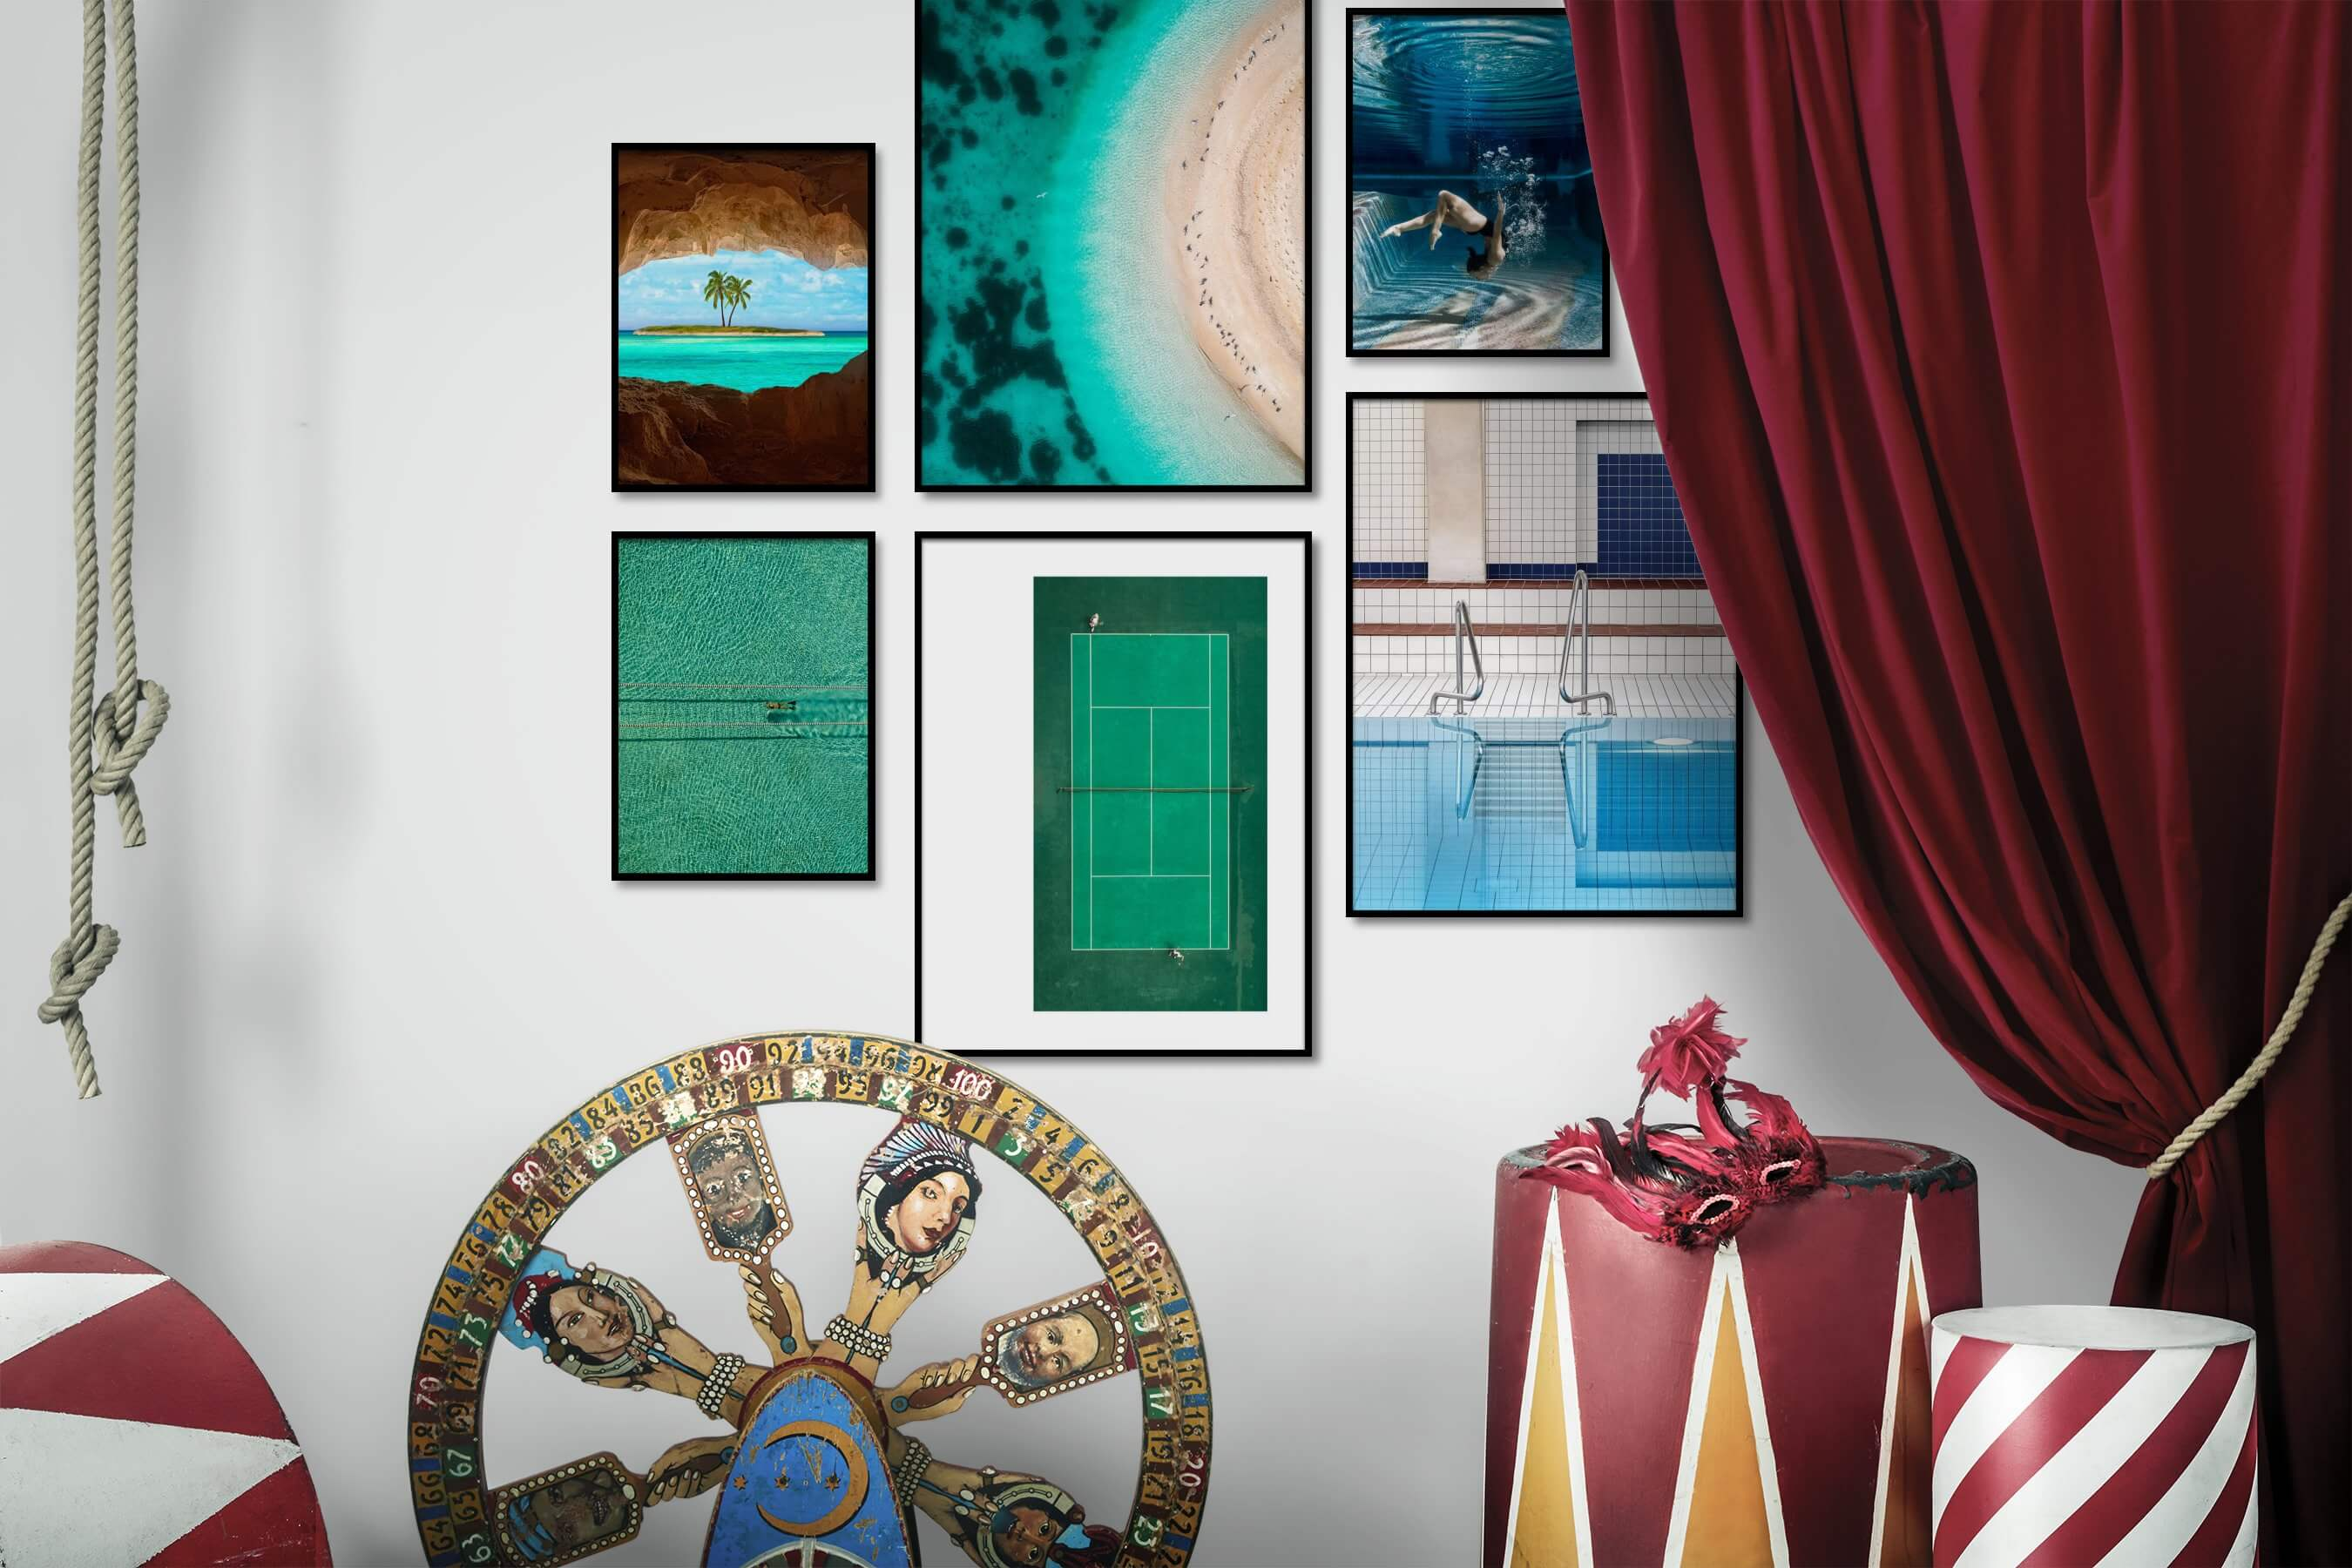 Gallery wall idea with six framed pictures arranged on a wall depicting Beach & Water, Mindfulness, Colorful, For the Moderate, and Fashion & Beauty